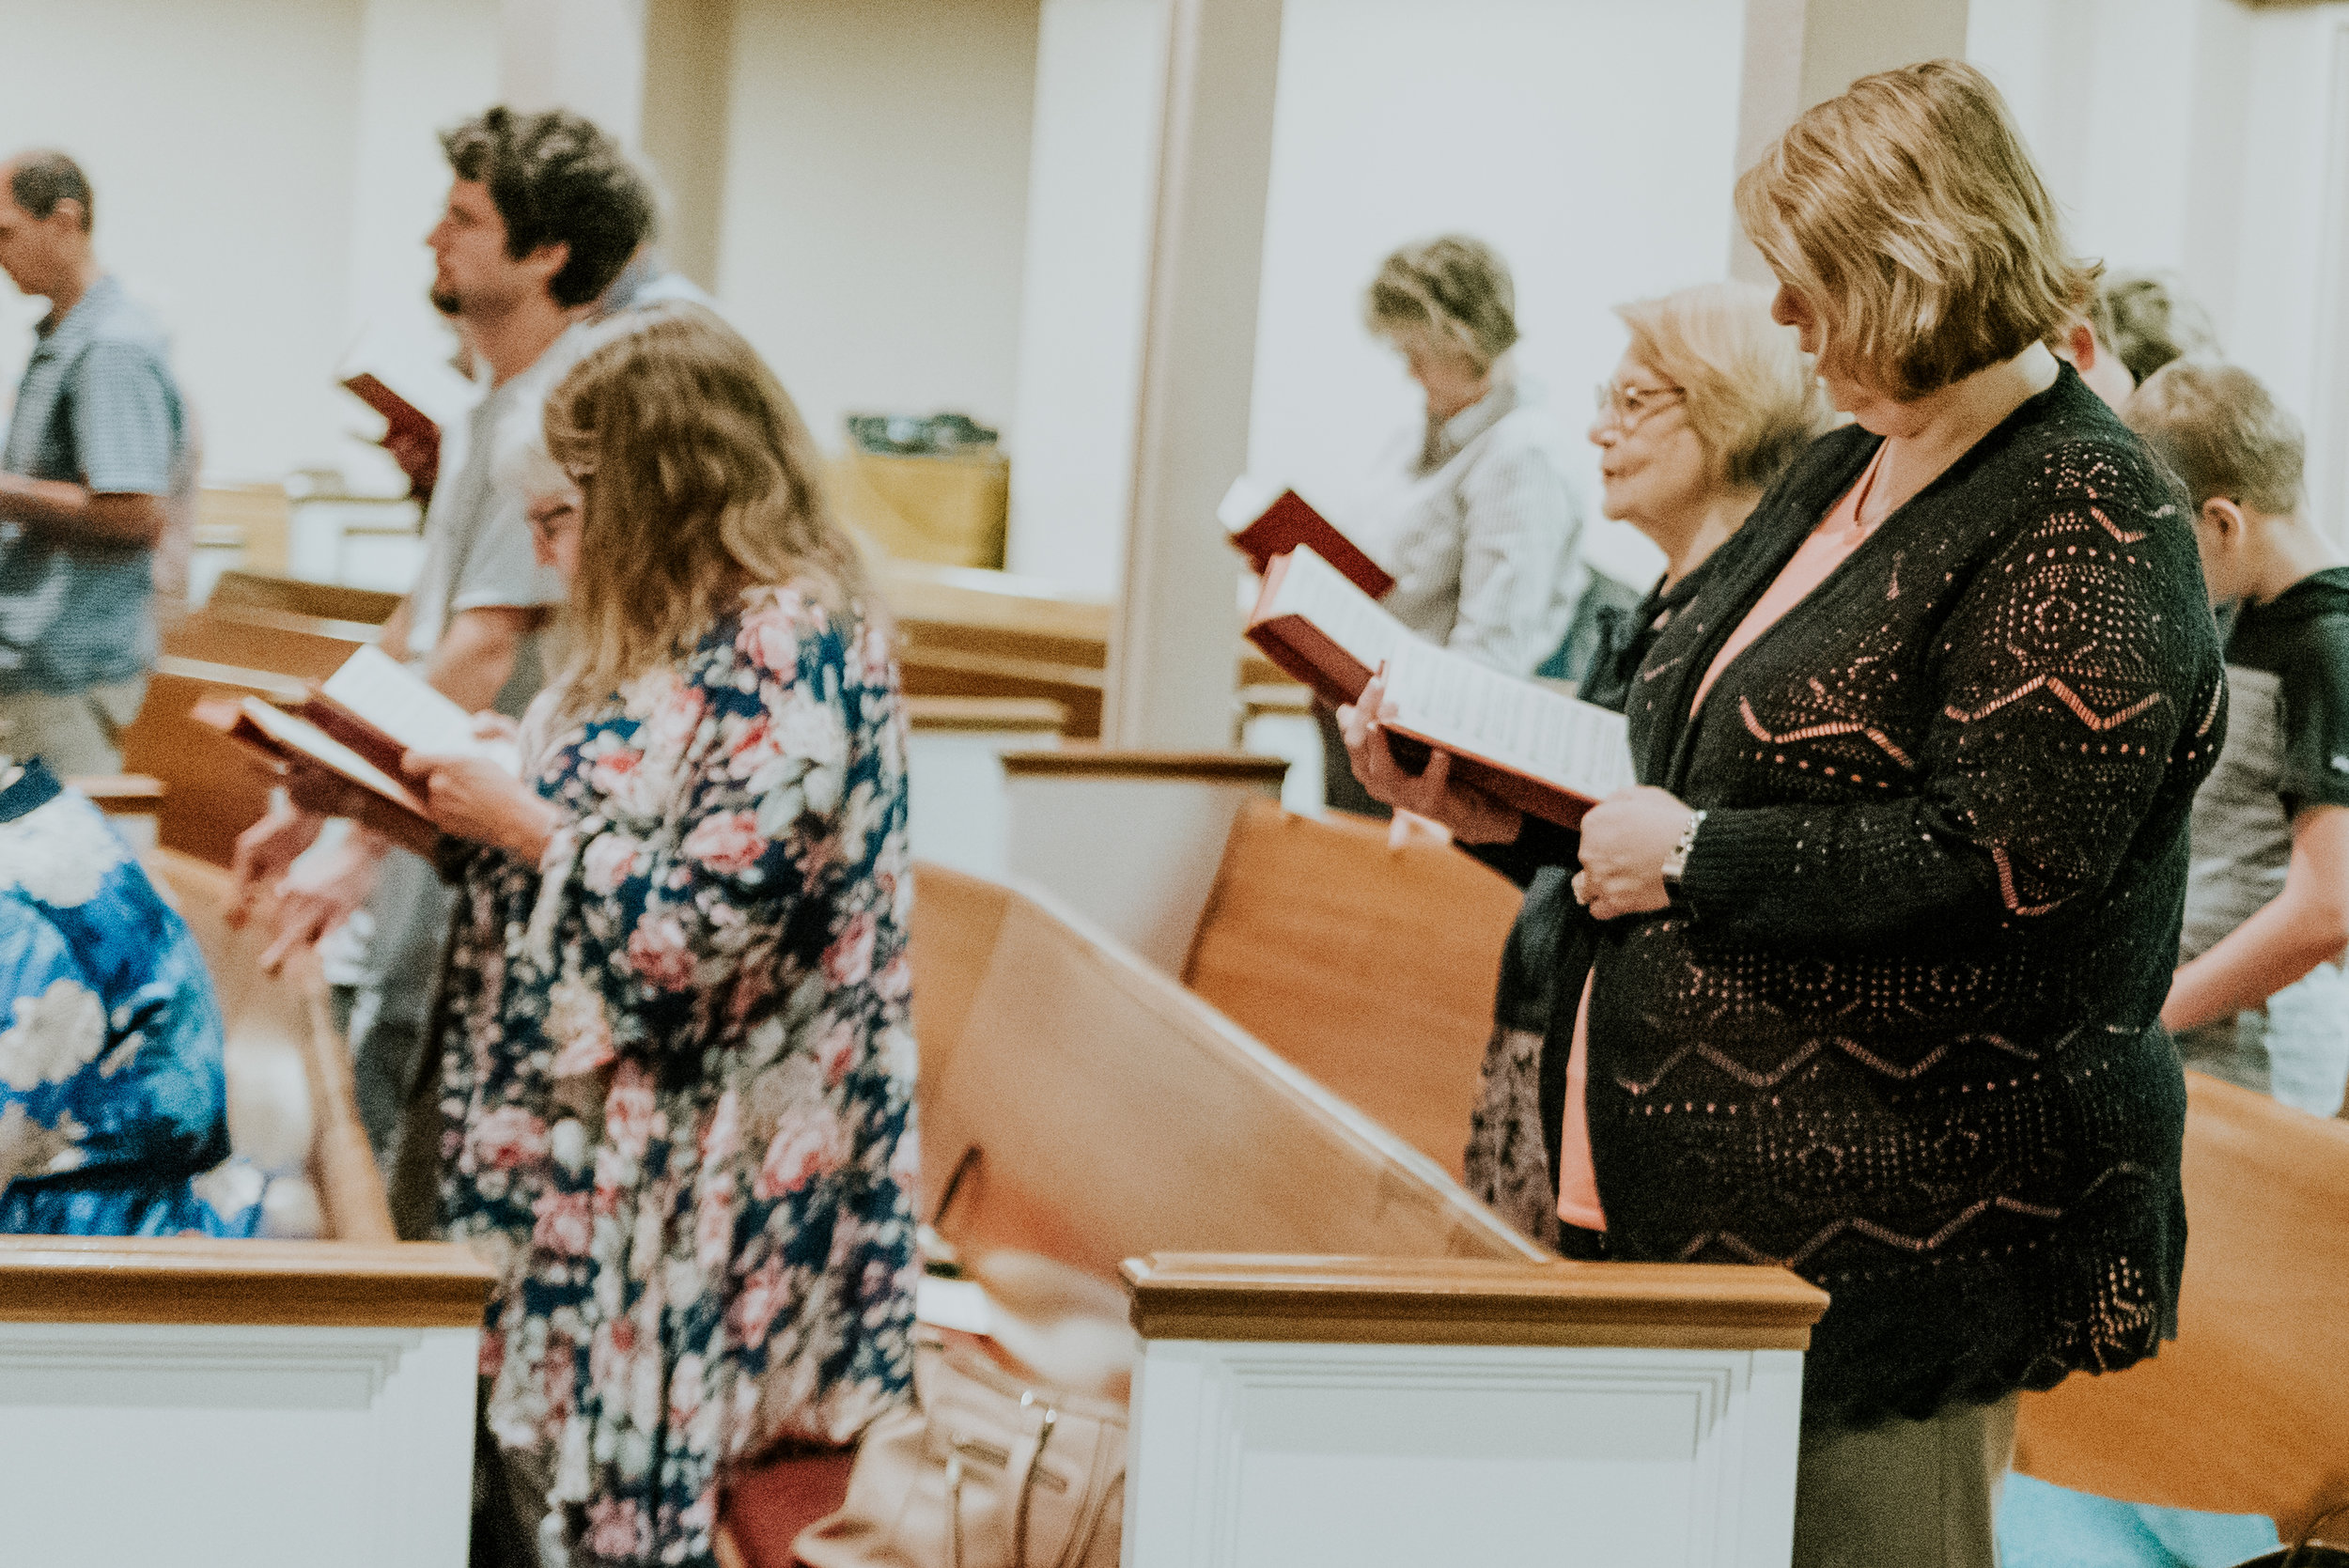 - What should I expect?We have Bible Study that begins at 9:30 a.m. It's one of the best ways to get to know people at the church. Our worship service begins at 10:45 a.m. We follow an order of worship that includes music, Scripture readings, prayers, the sermon, and a benediction. The music is traditional congregational worship with a mixture of hymns and music sung by our choir.